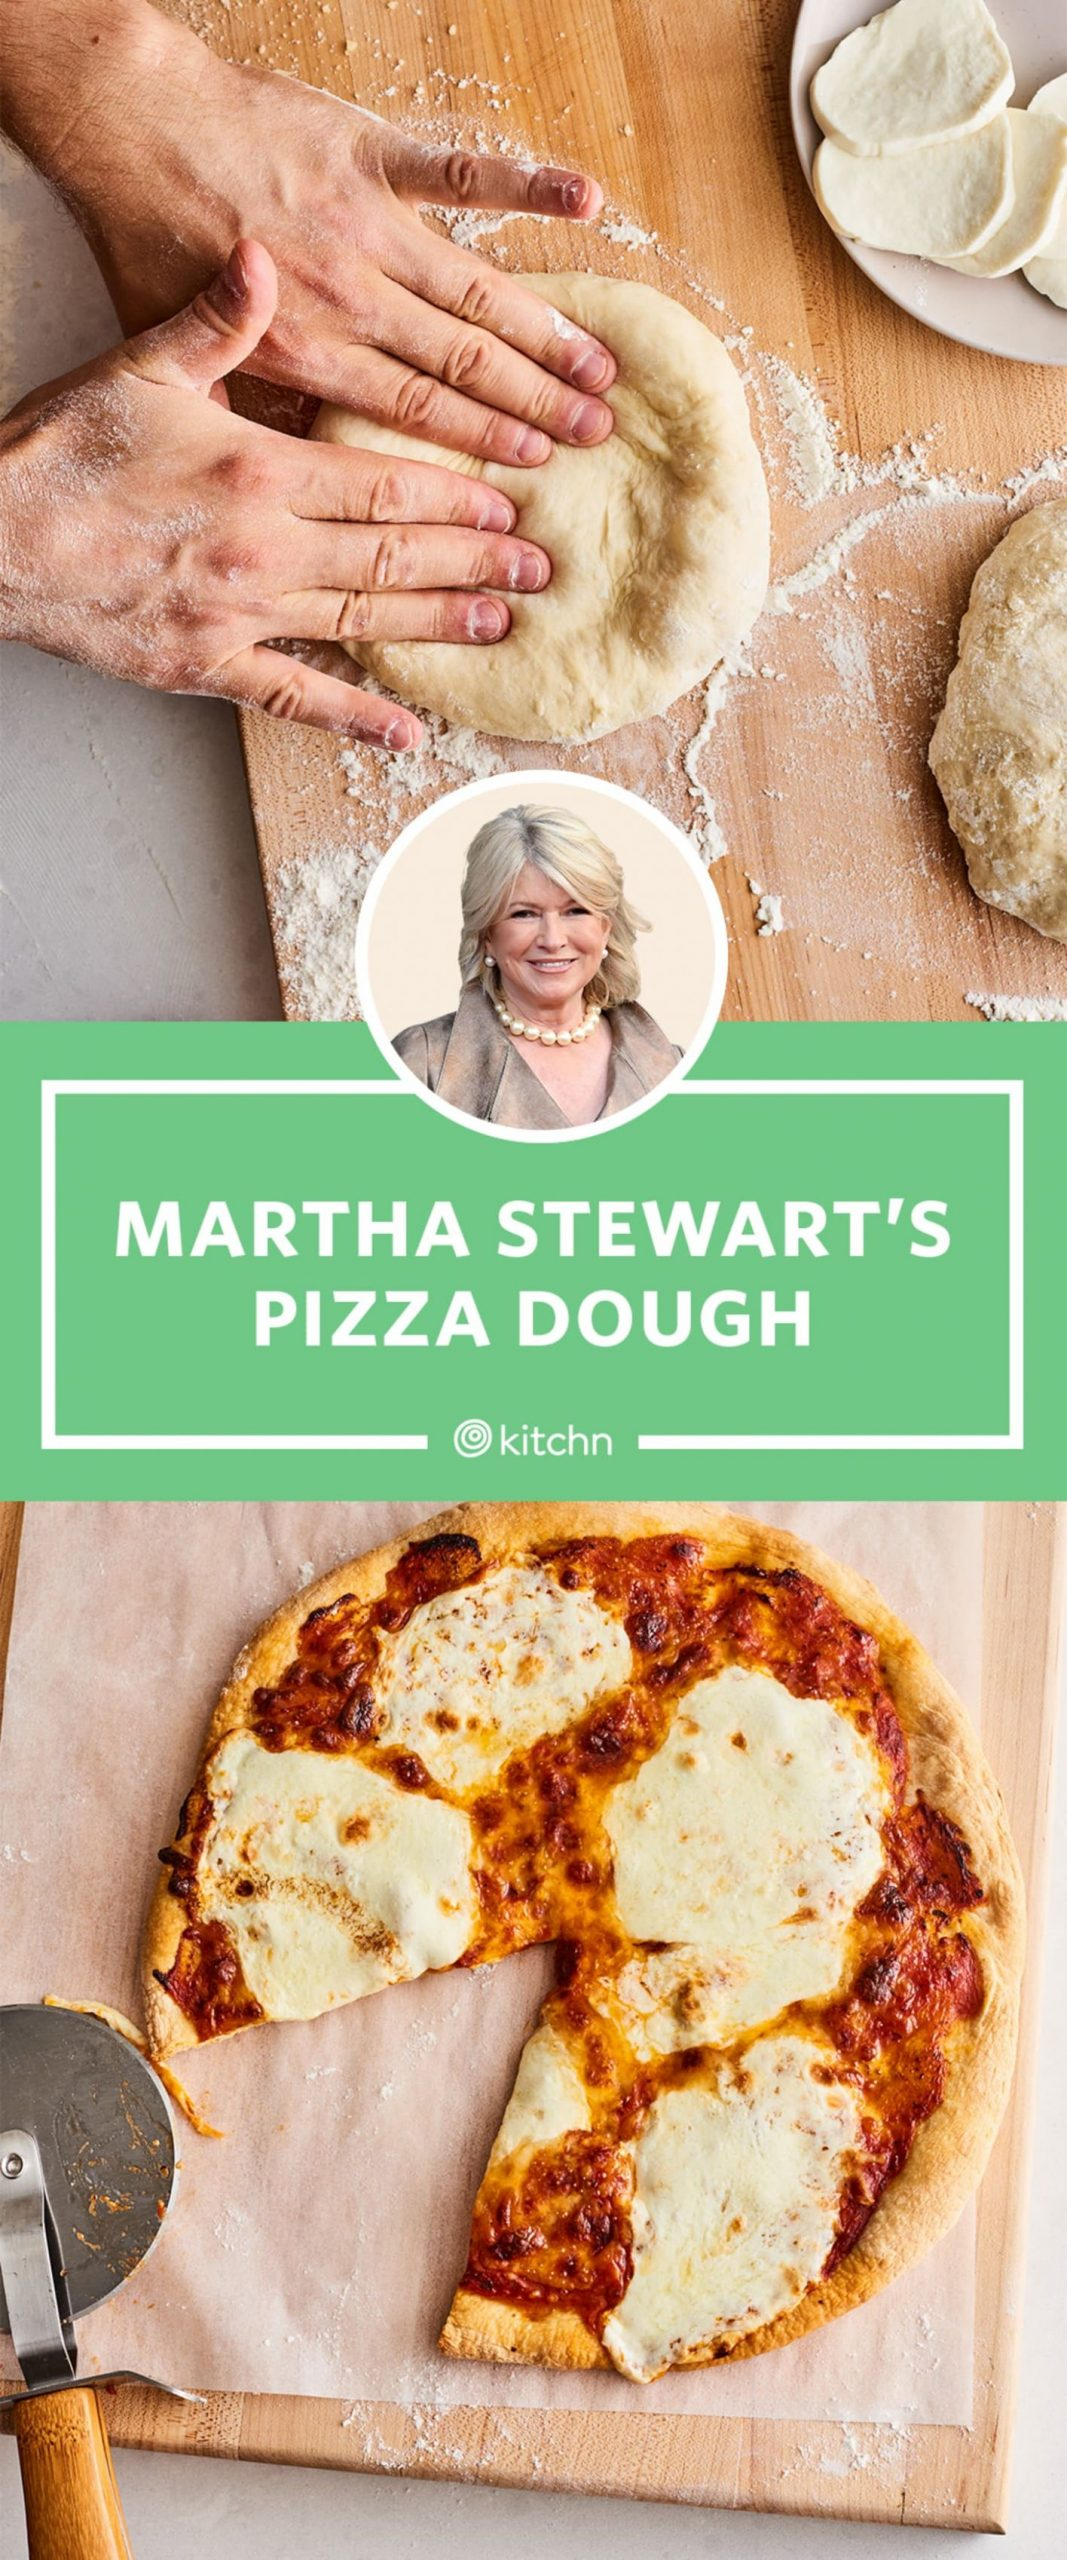 I Tried Martha Stewart's Pizza Dough Recipe | Kitchn